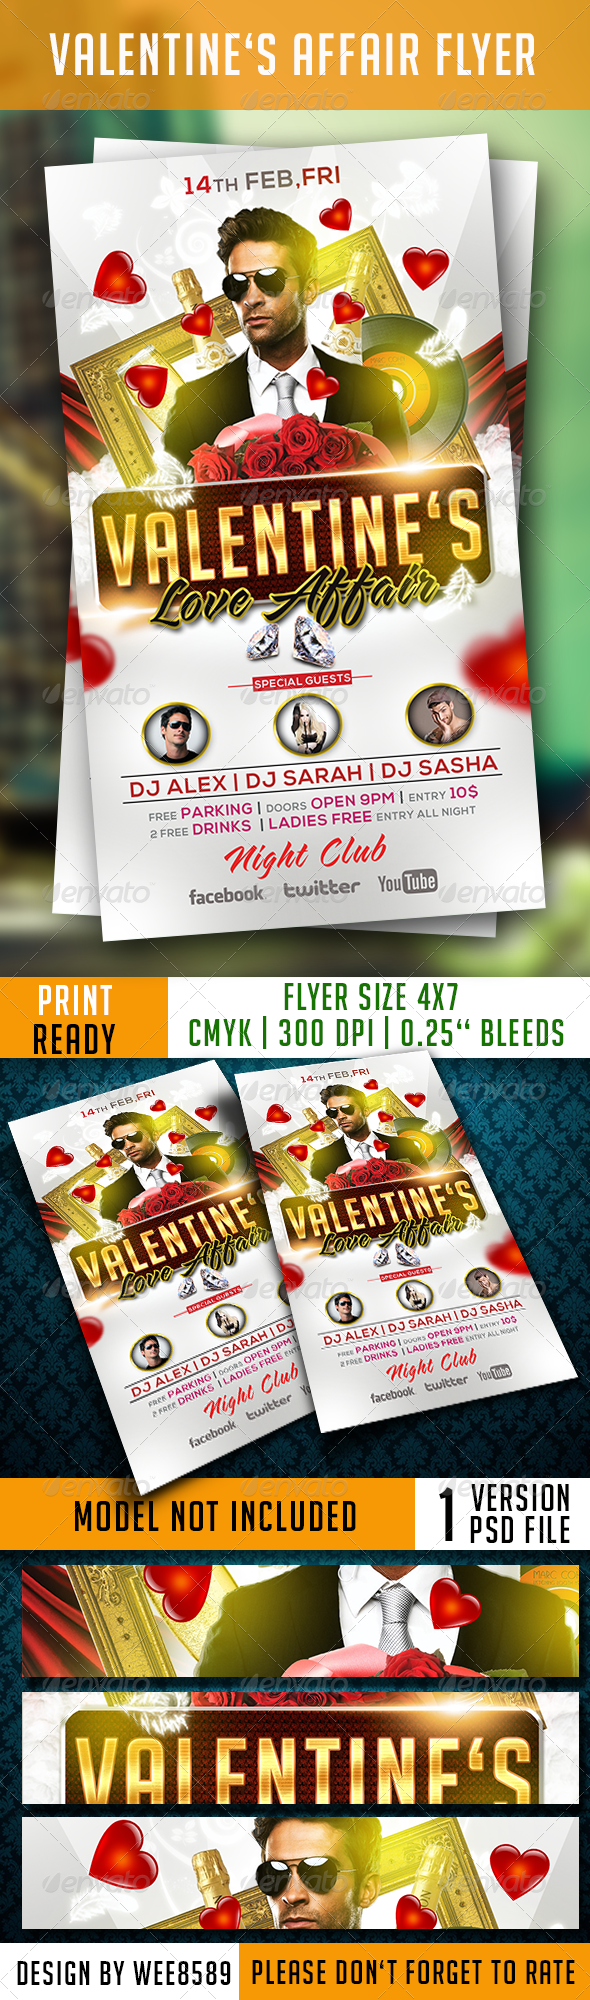 GraphicRiver Valentine s Affair Flyer Template 6572940